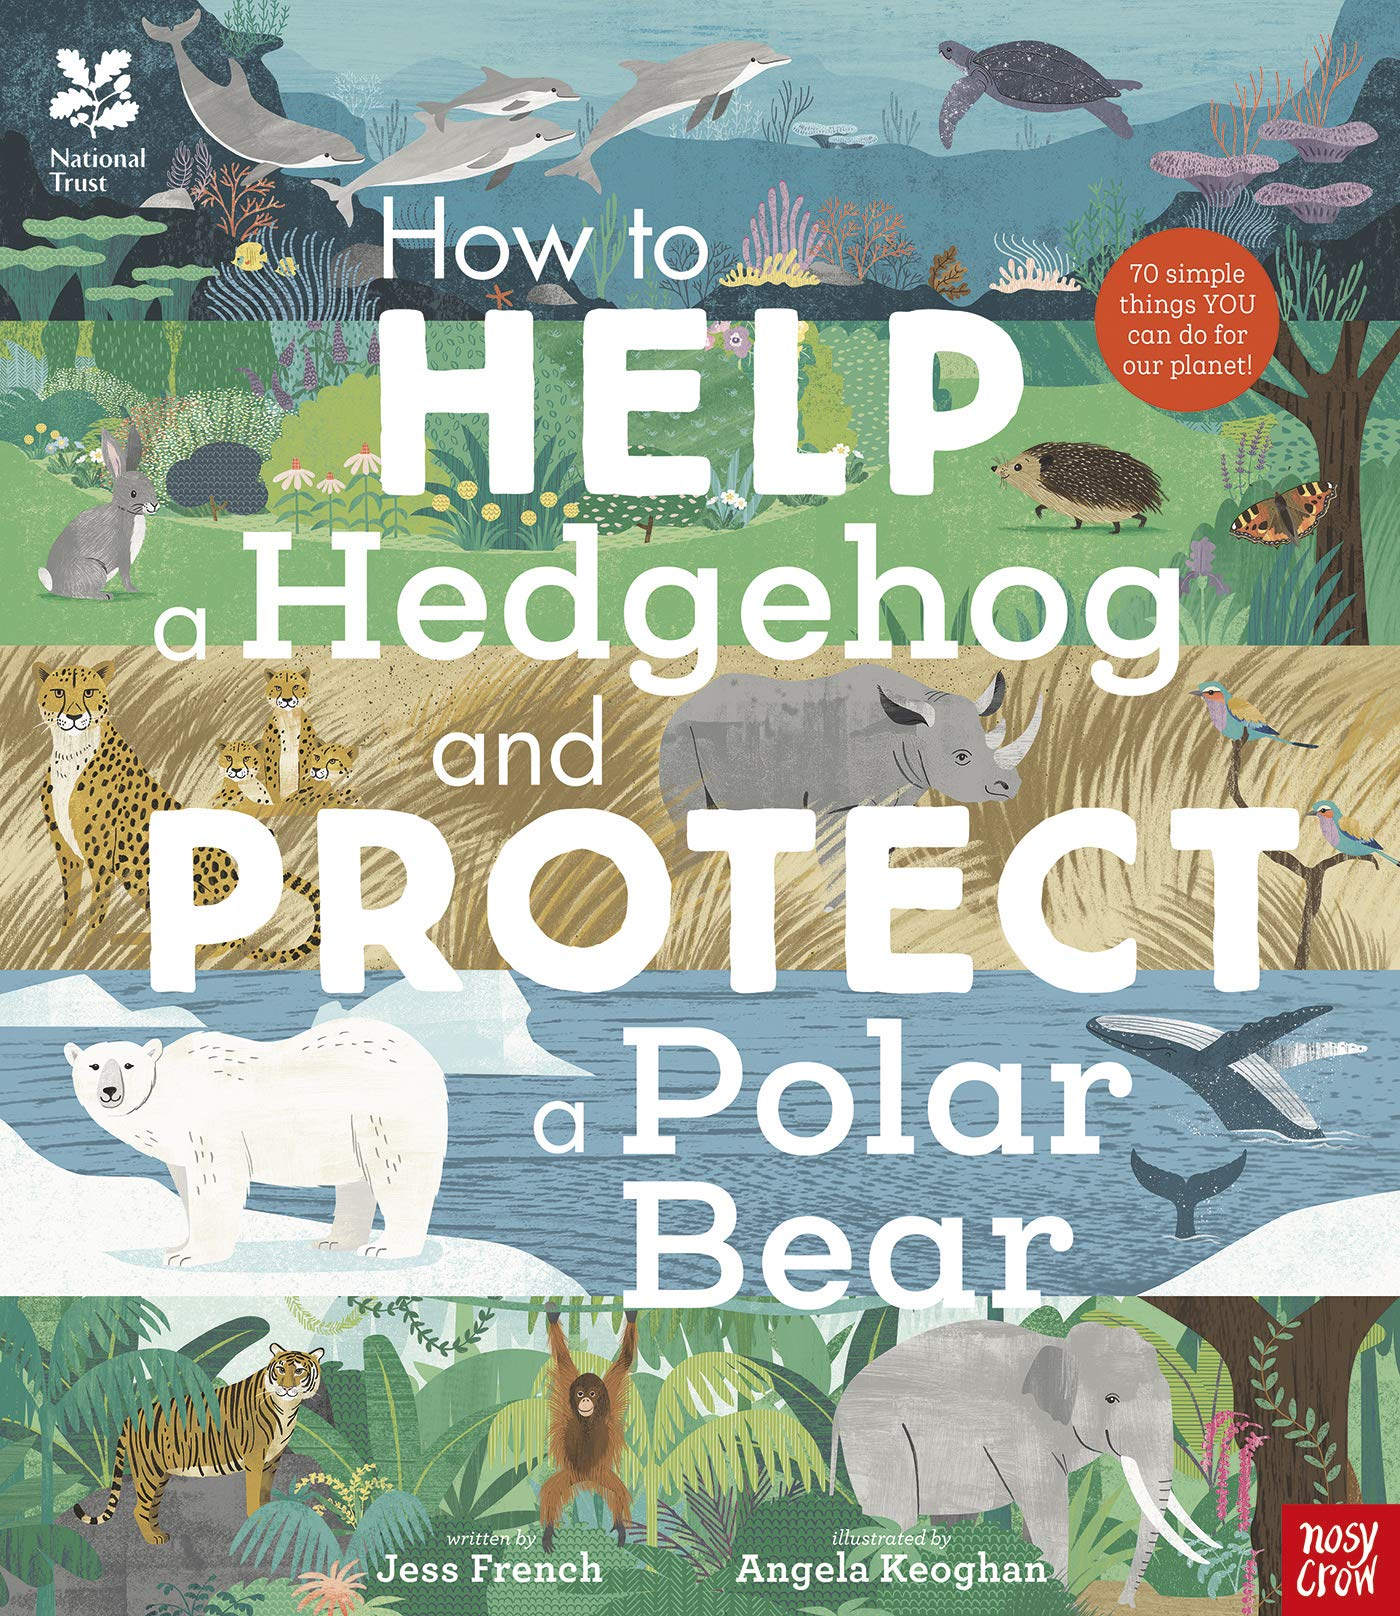 National Trust: How to Help a Hedgehog and Protect a Polar Bear:  Amazon.co.uk: Jess French, Angela Keoghan, Angela Keoghan: 9781788002578:  Books